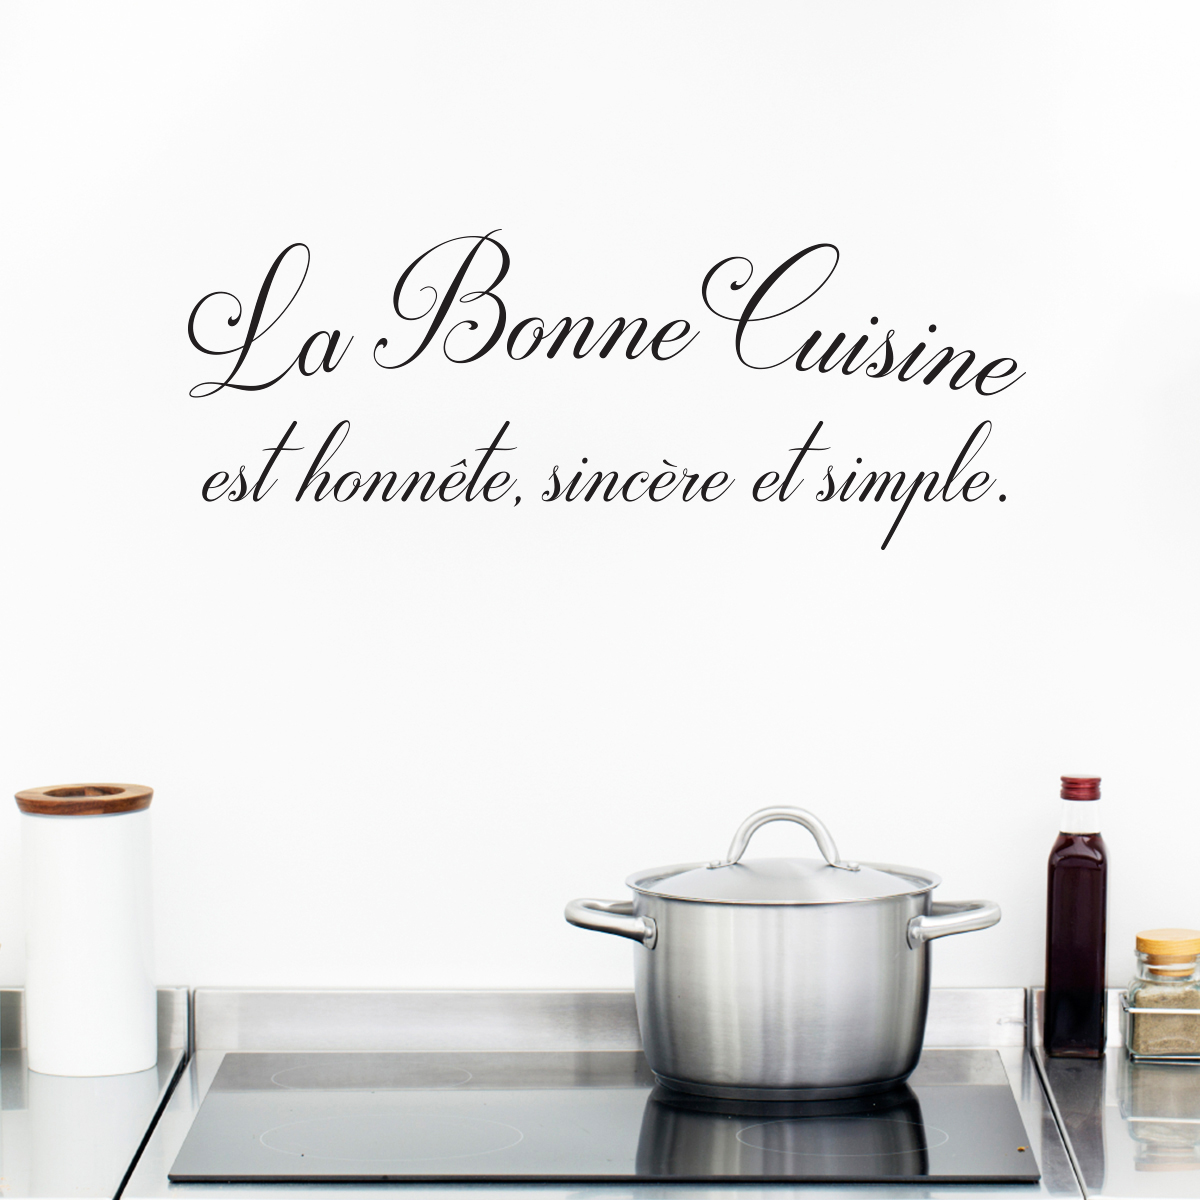 Decoration Murale Citation Sticker Citation Cuisine La Bonne Cuisine Stickers